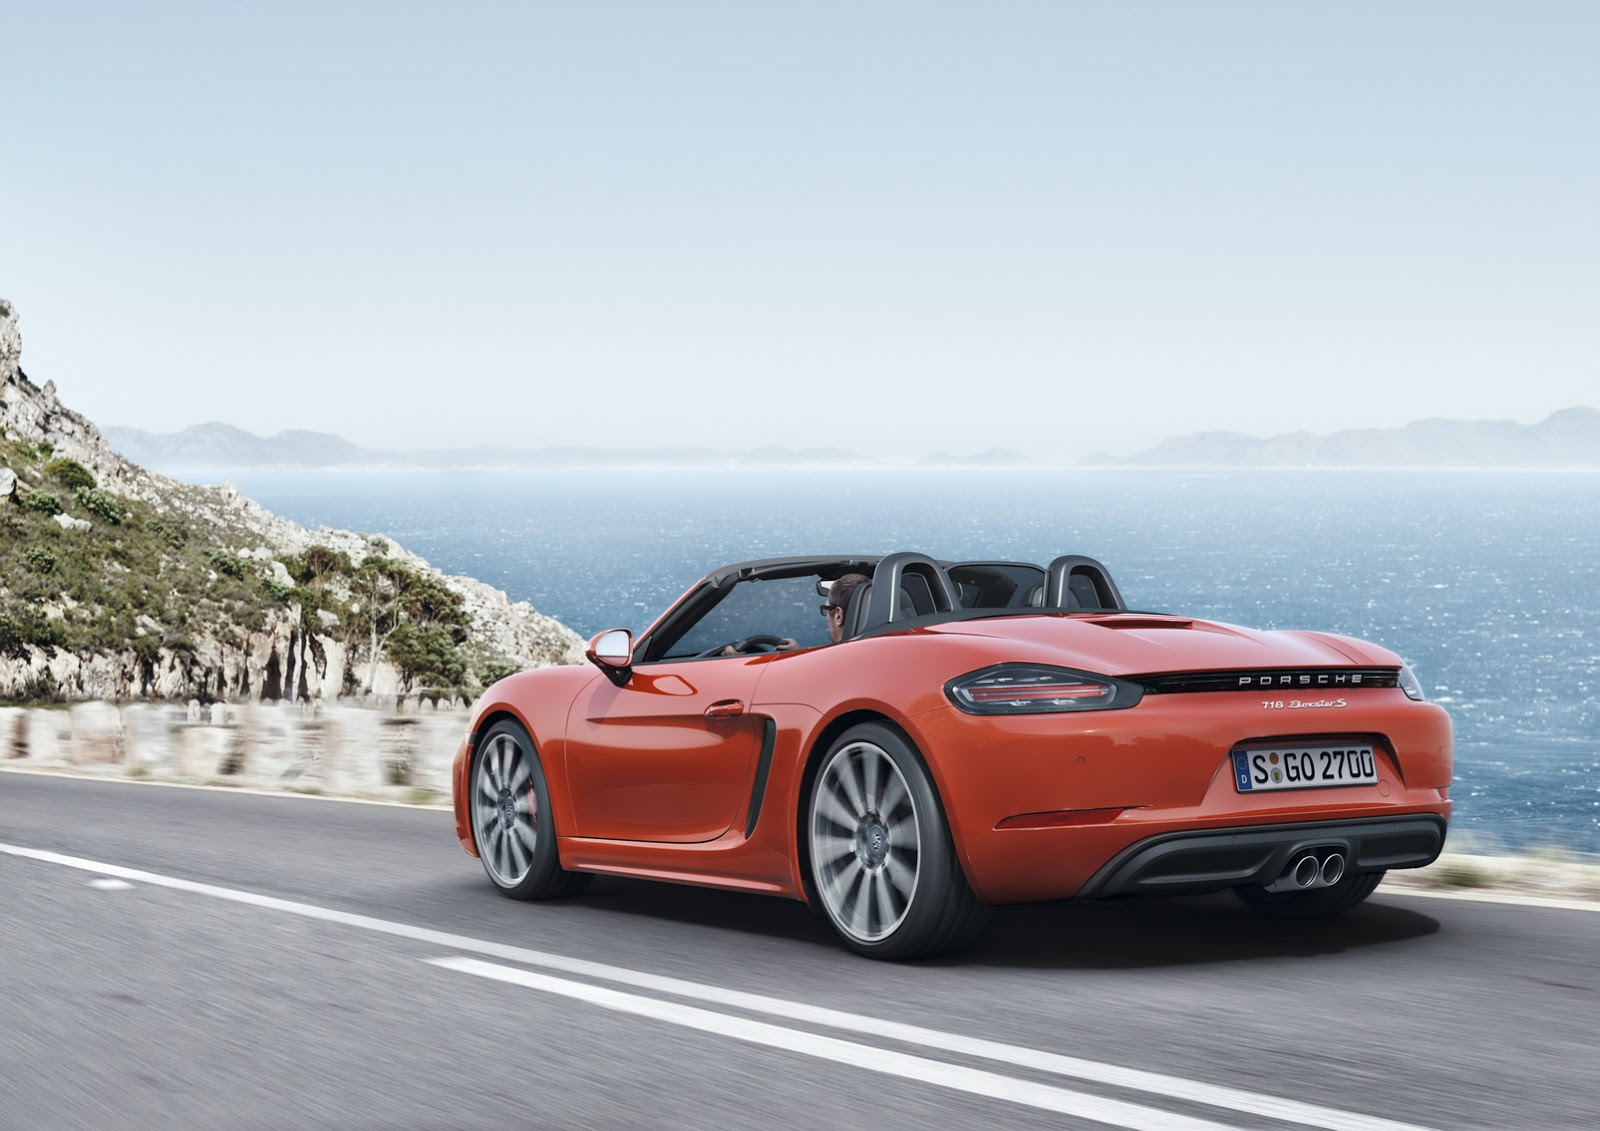 porsche 718 boxster revealed with new turbo d 4 cylinder engines w video carscoops. Black Bedroom Furniture Sets. Home Design Ideas